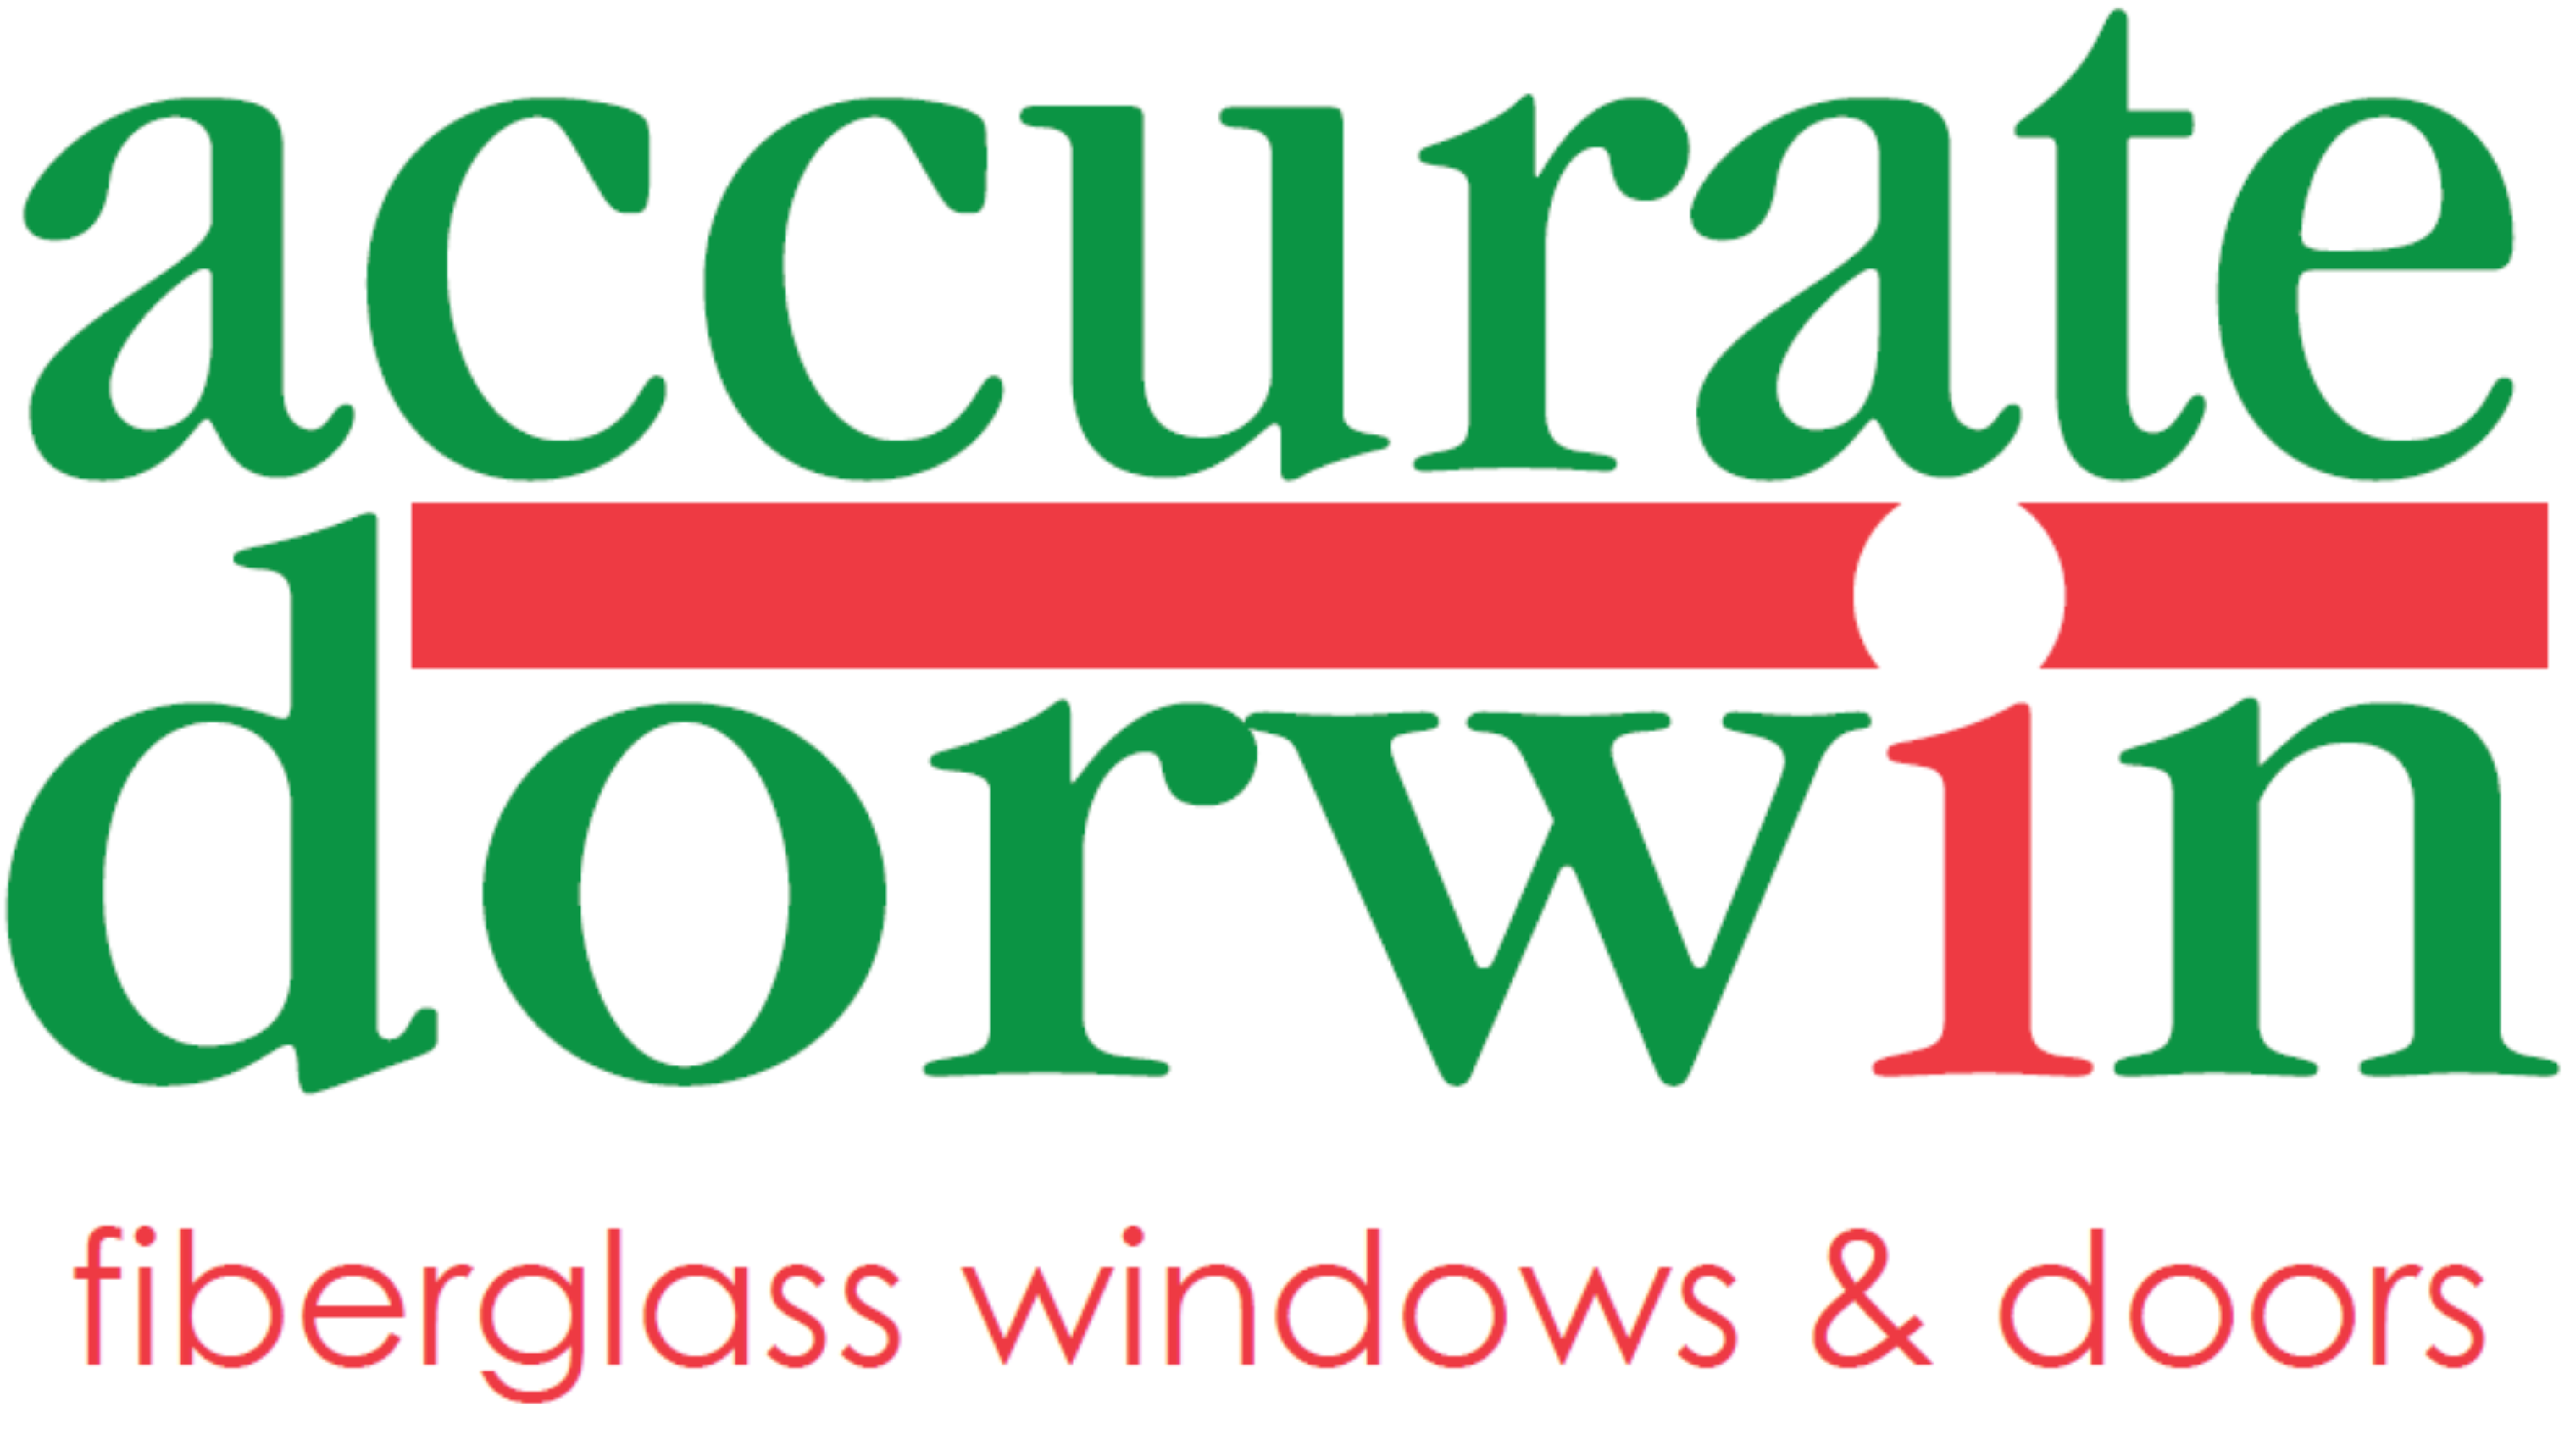 Accurate Dorwin - Fiberglass Windows & Doors